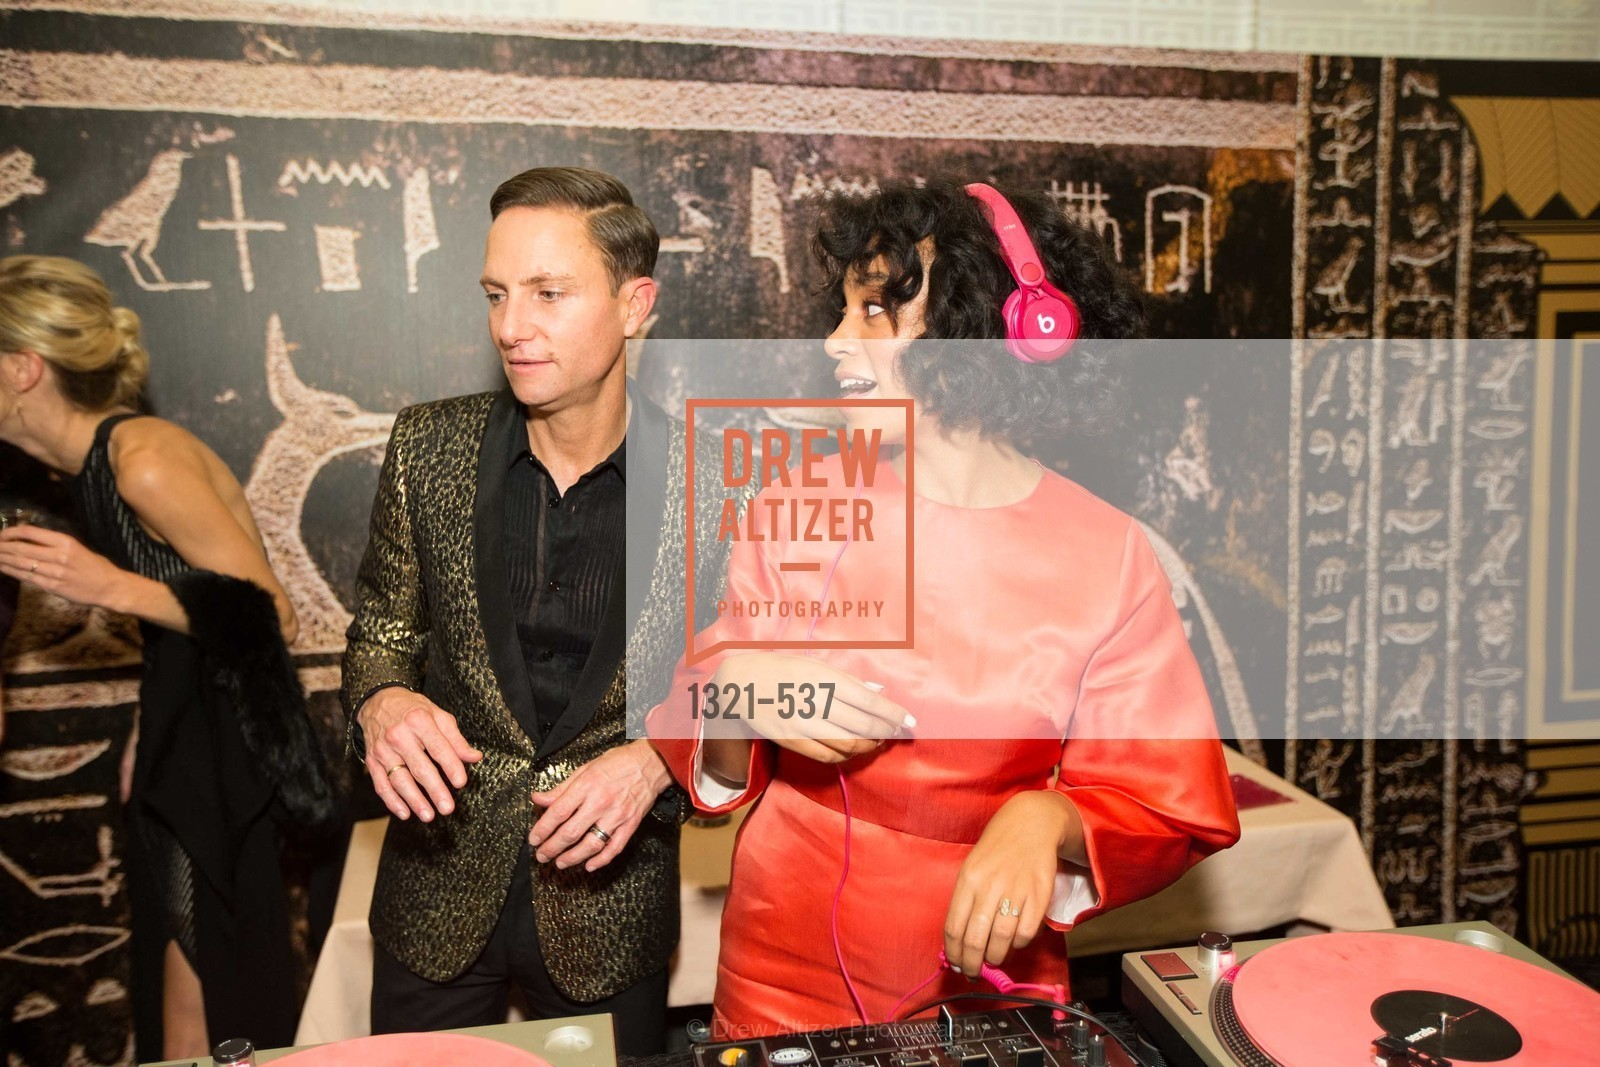 Ken Fulk, Dj, TOP OF THE MARK'S 75TH Anniversary Party, US, November 6th, 2014,Drew Altizer, Drew Altizer Photography, full-service agency, private events, San Francisco photographer, photographer california